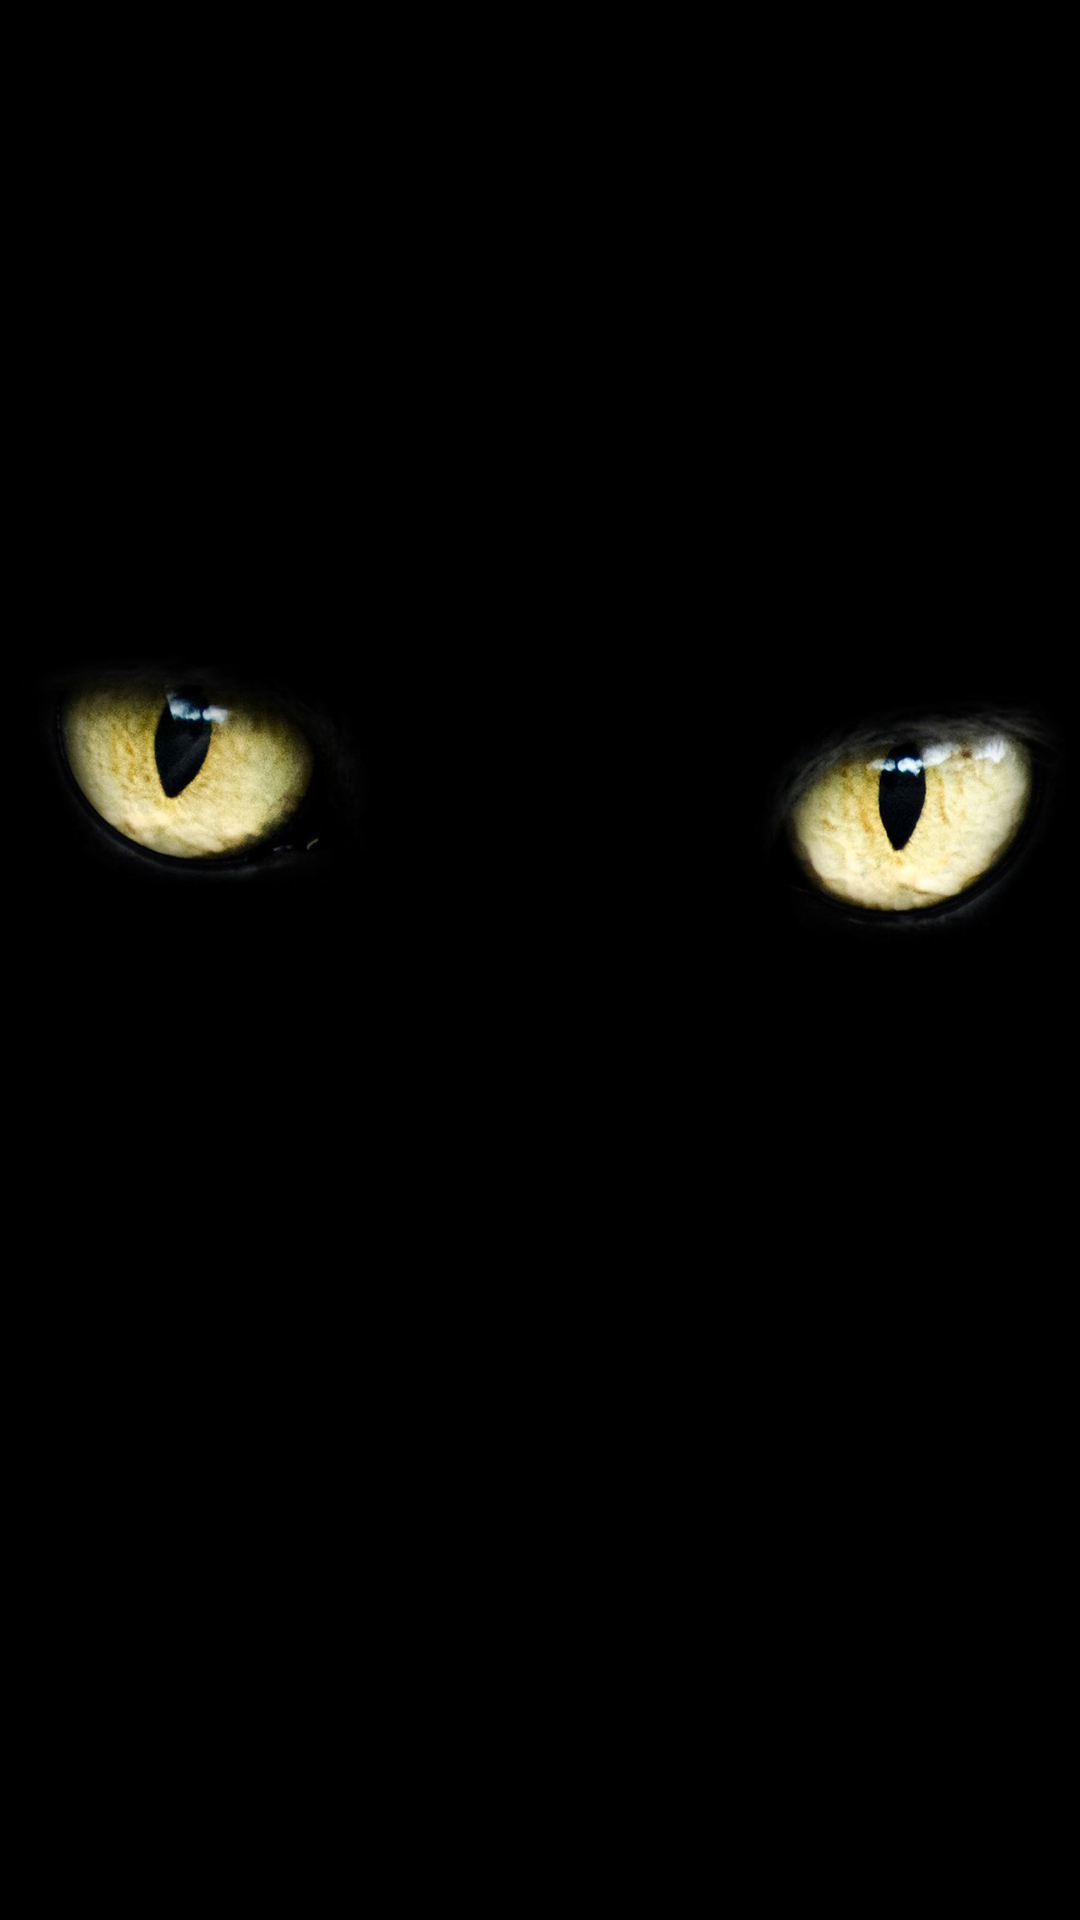 Cat Eyes Hd Wallpaper For Your Mobile